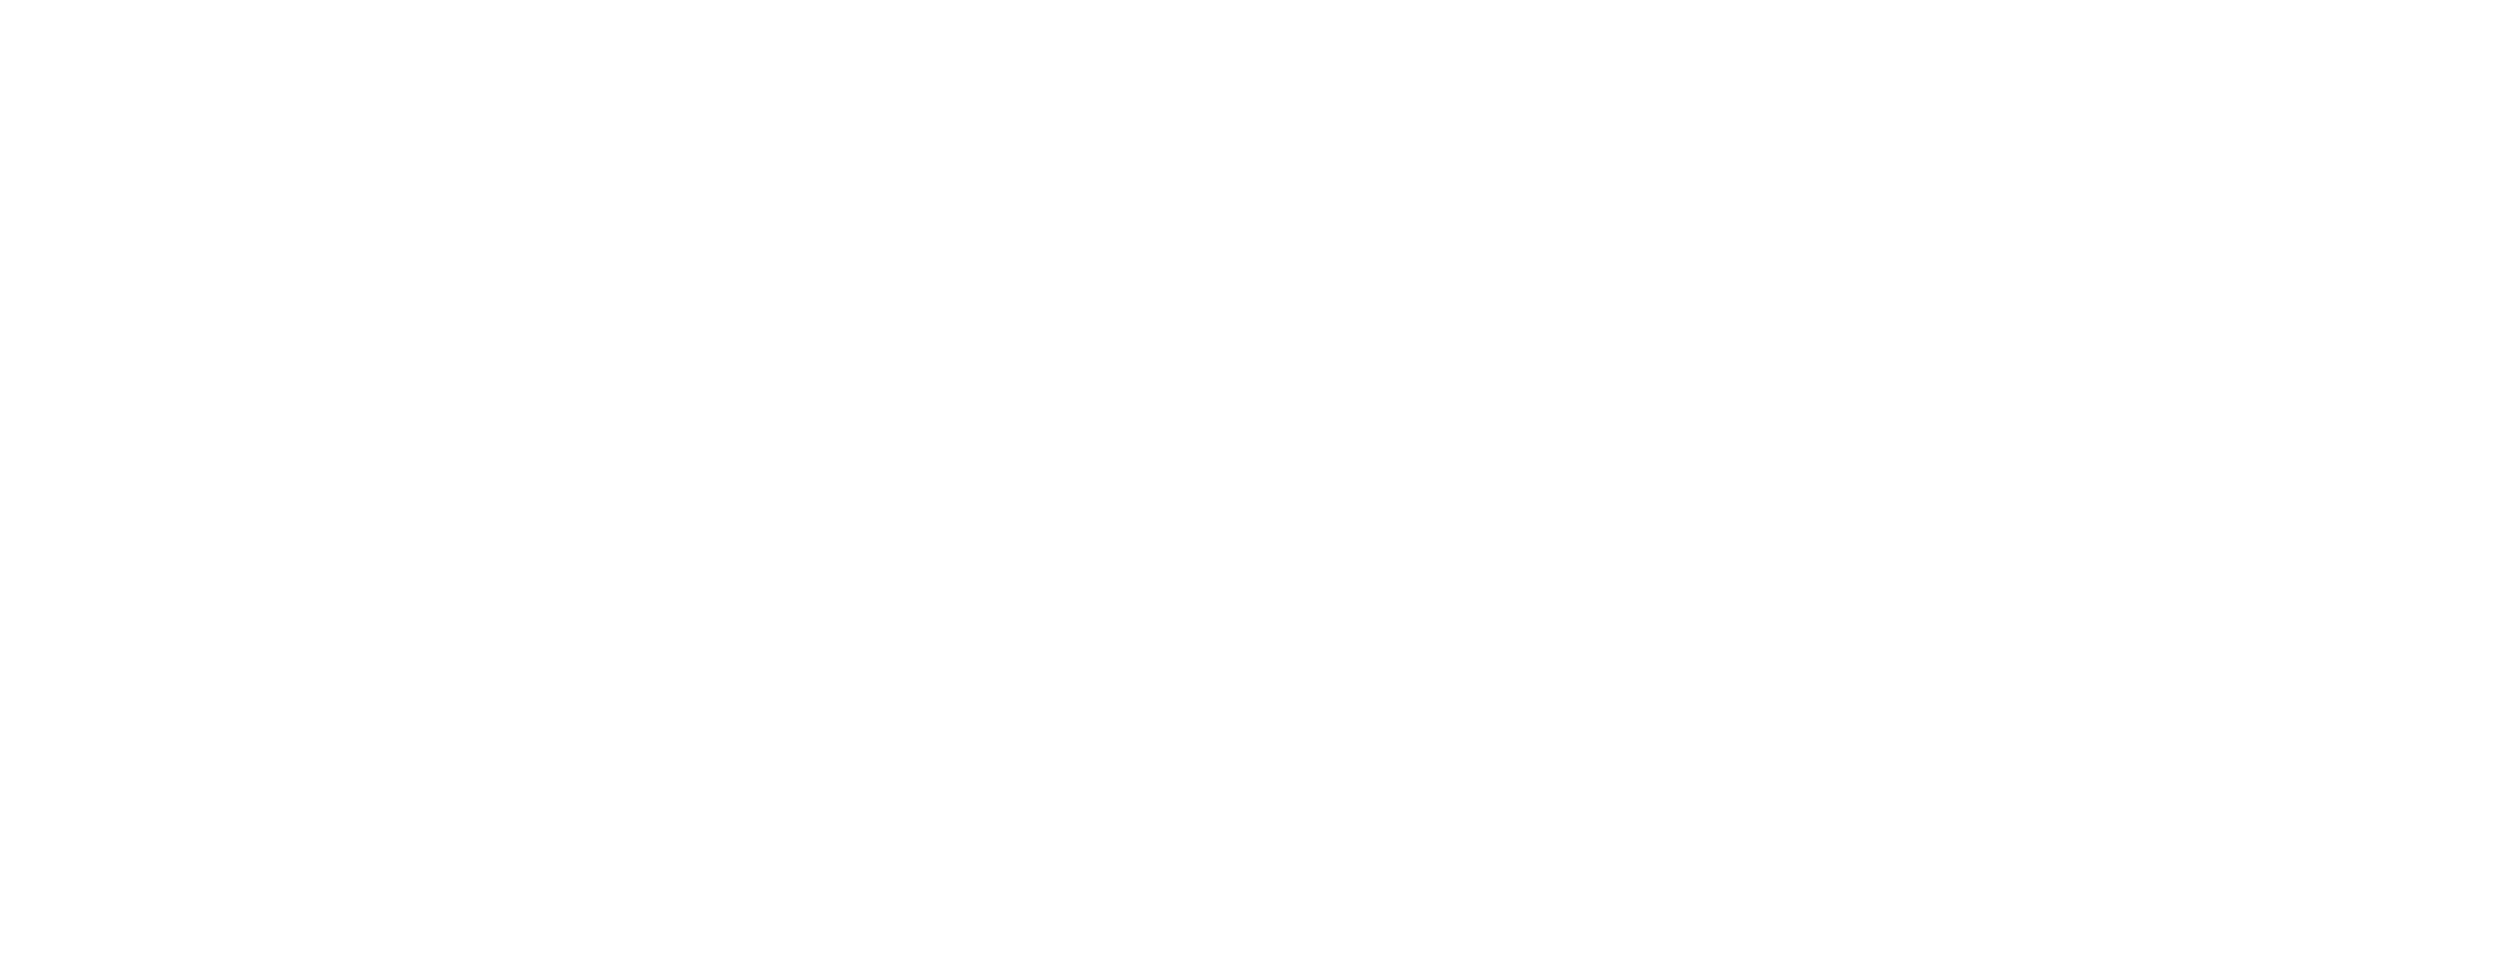 King's Arms Ministries-logo-white (23).png